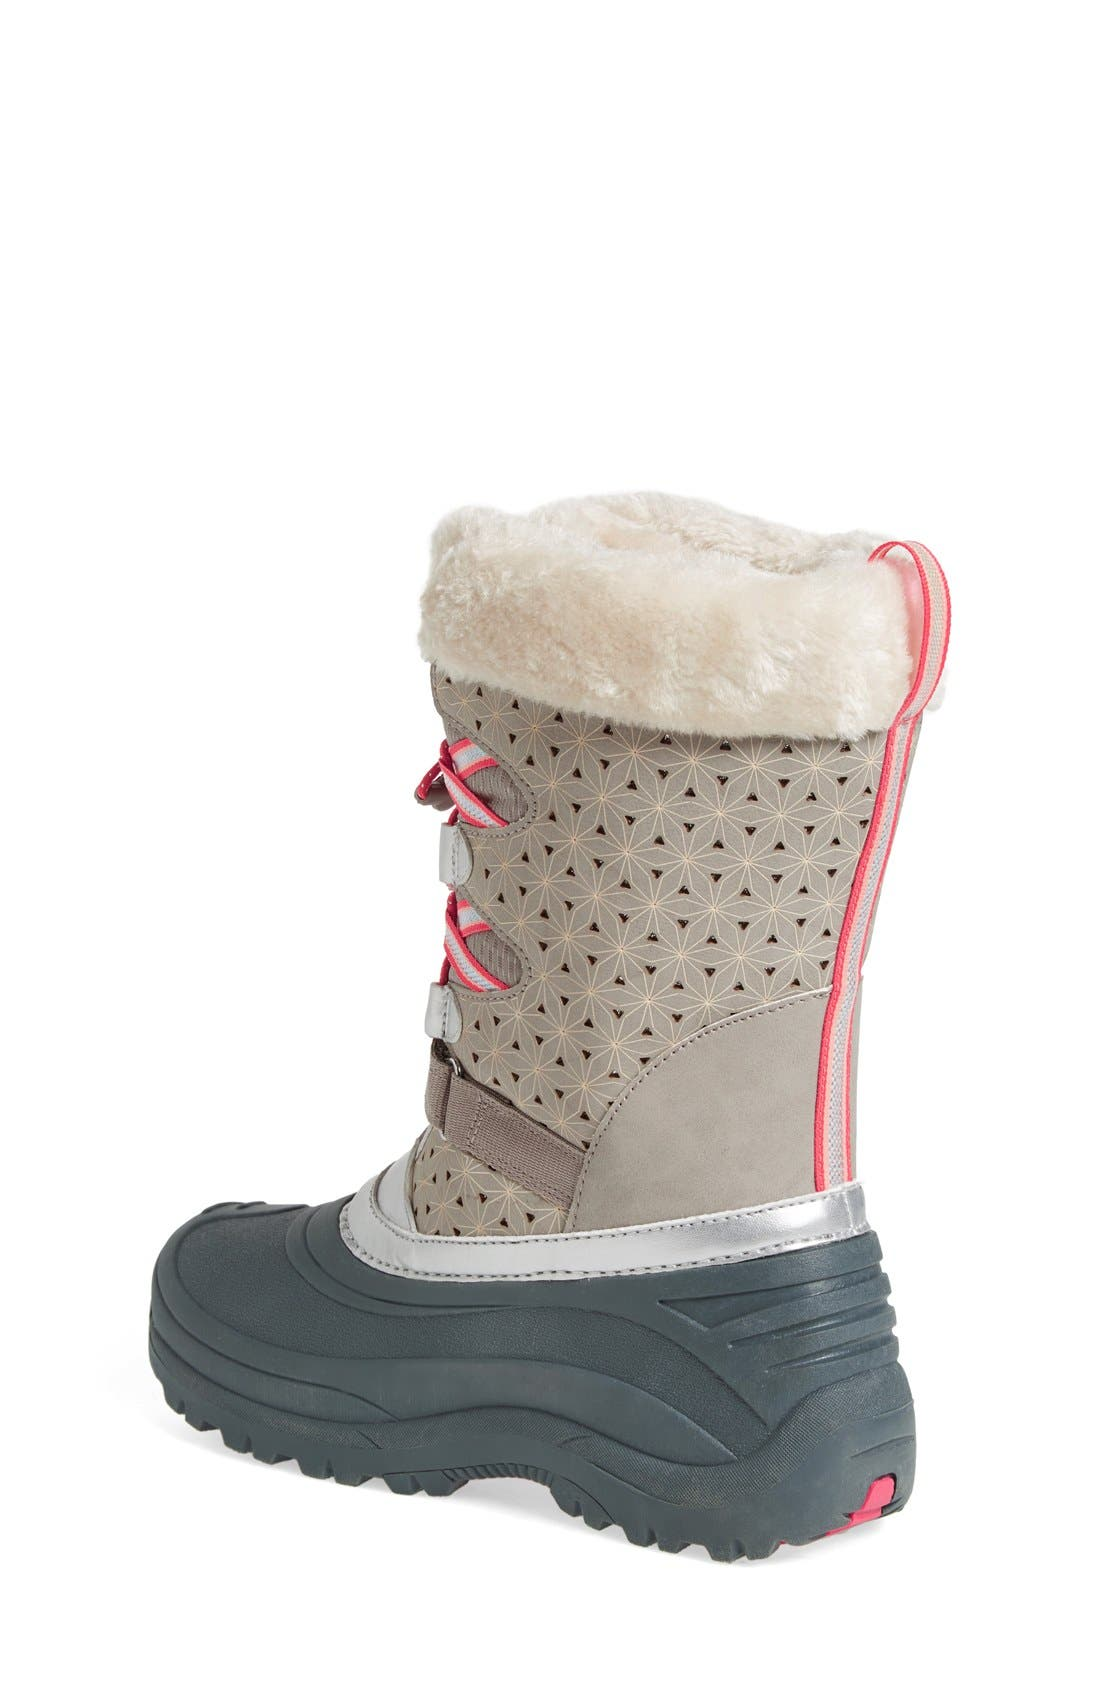 'Venom' Waterproof Insulated Snow Boot,                             Alternate thumbnail 2, color,                             Grey/ Pink